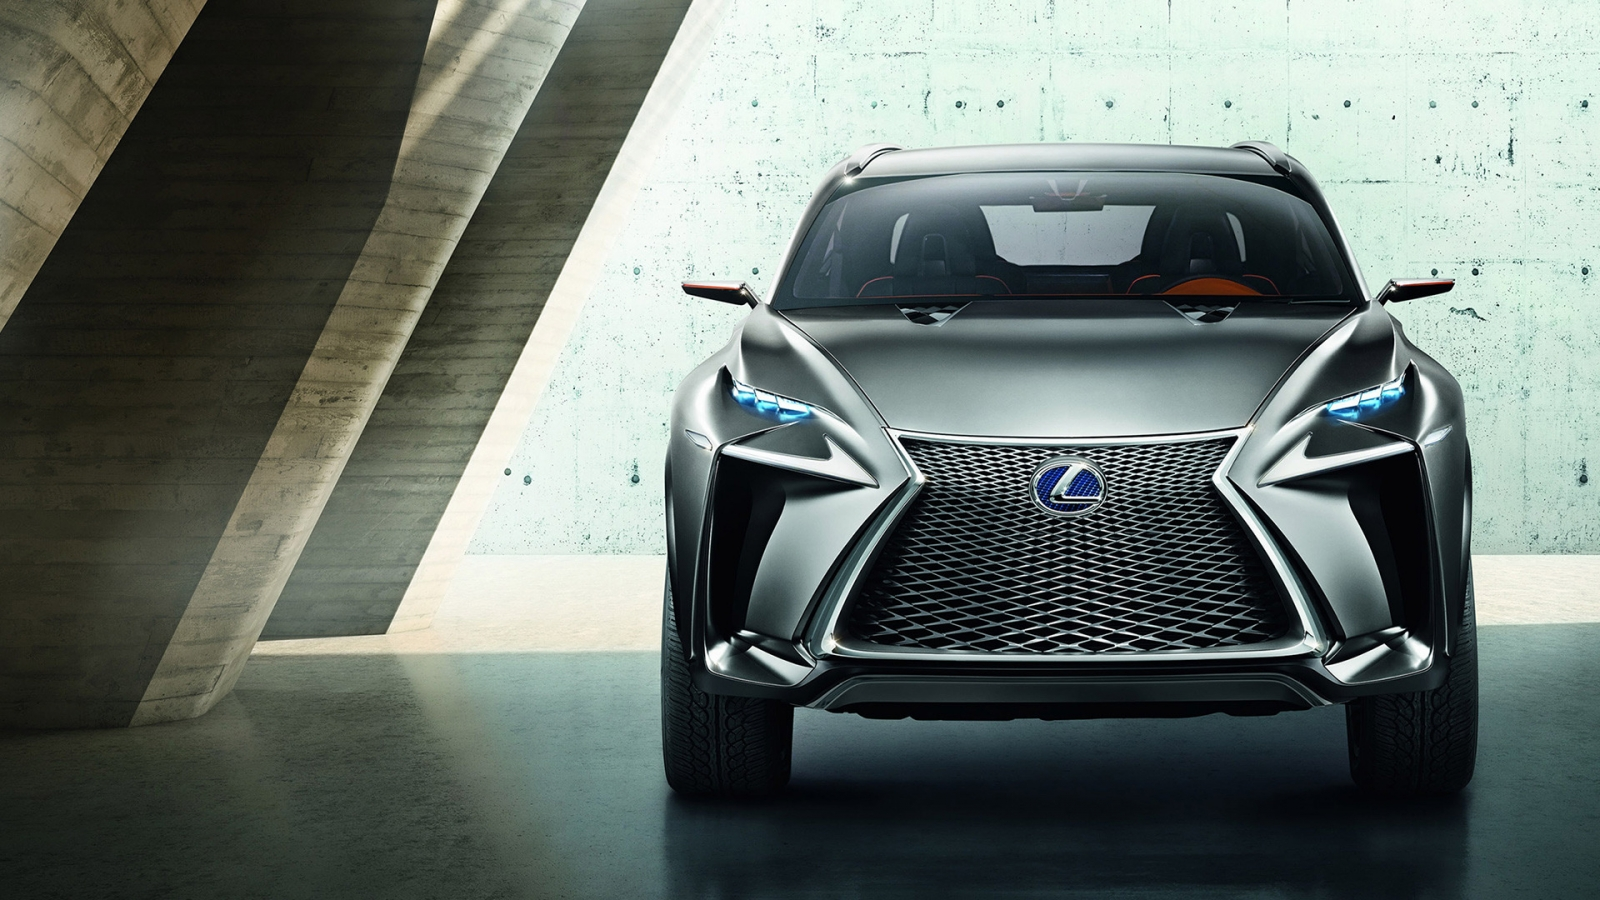 Lexus LF NX Crossover Concept for 1600 x 900 HDTV resolution